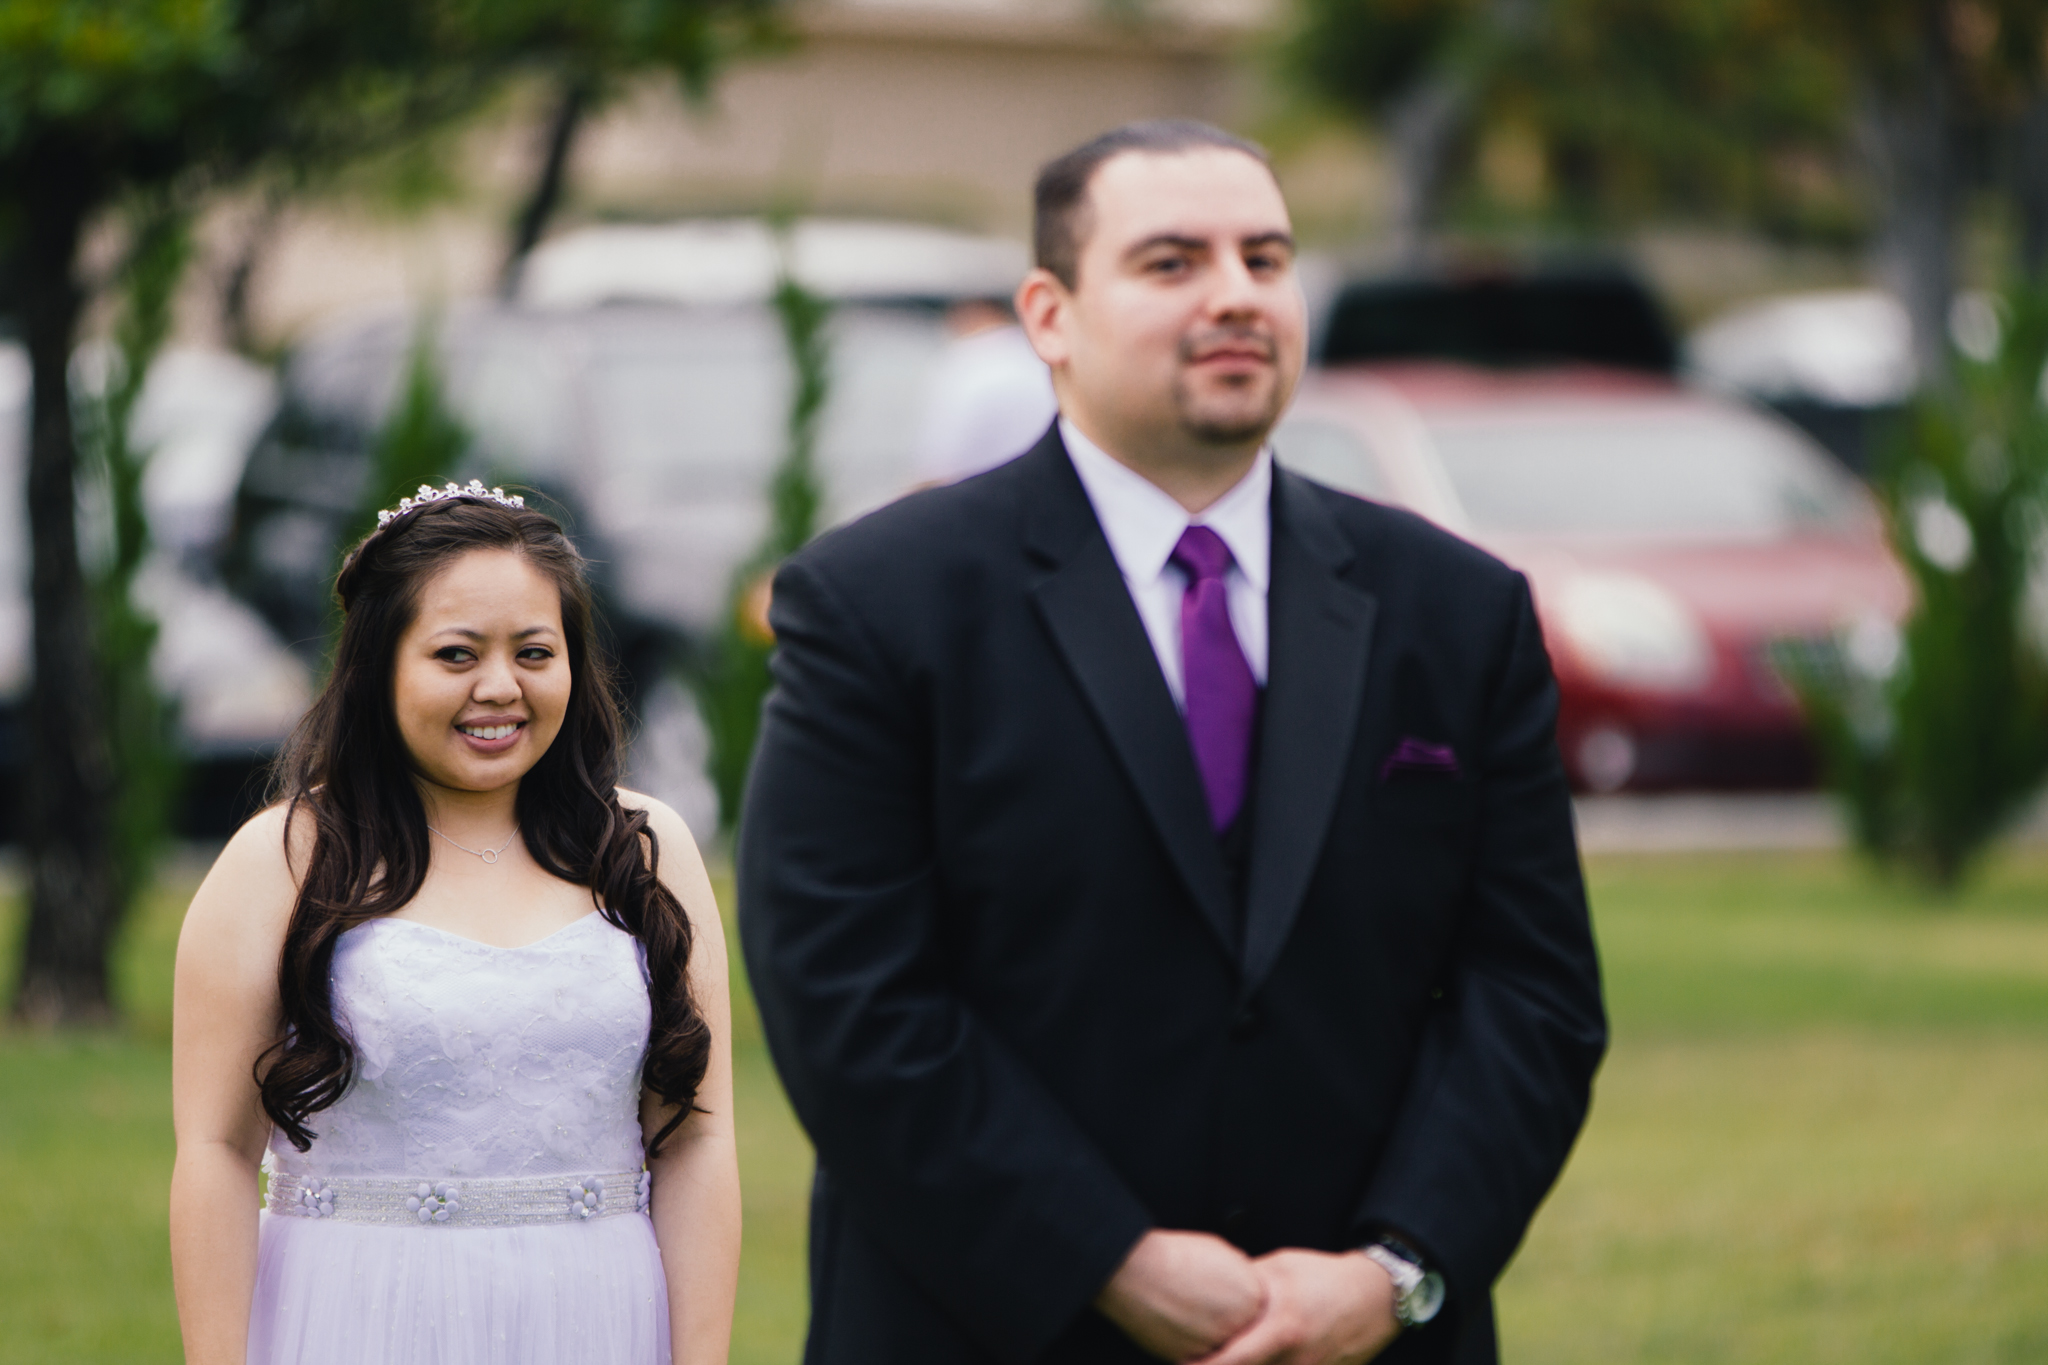 RLP-FirstLook-Michelle+Daniel-6.jpg